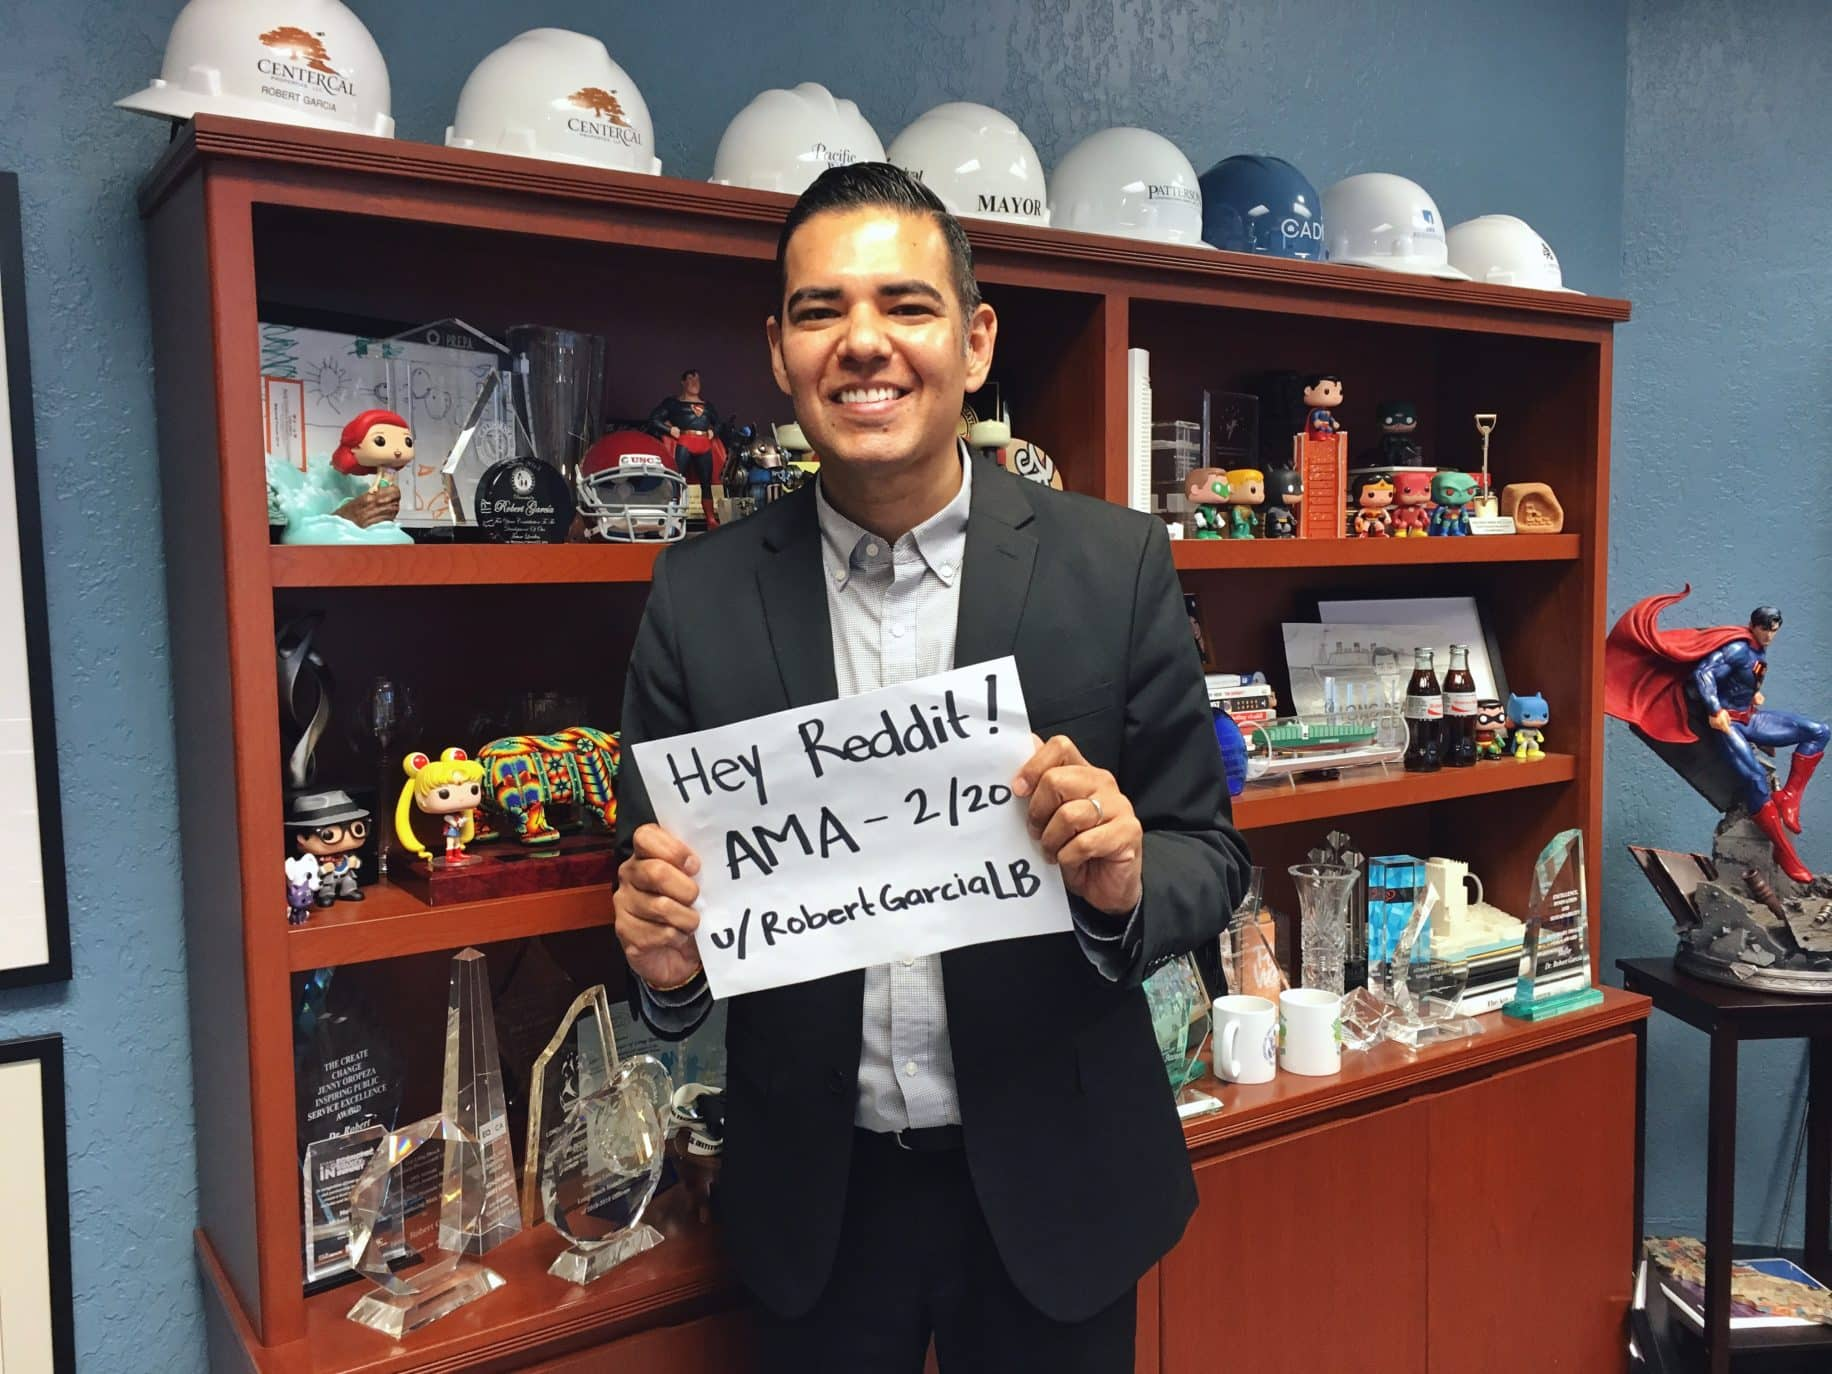 Mayor Garcia's Reddit session tackles movies, music and more